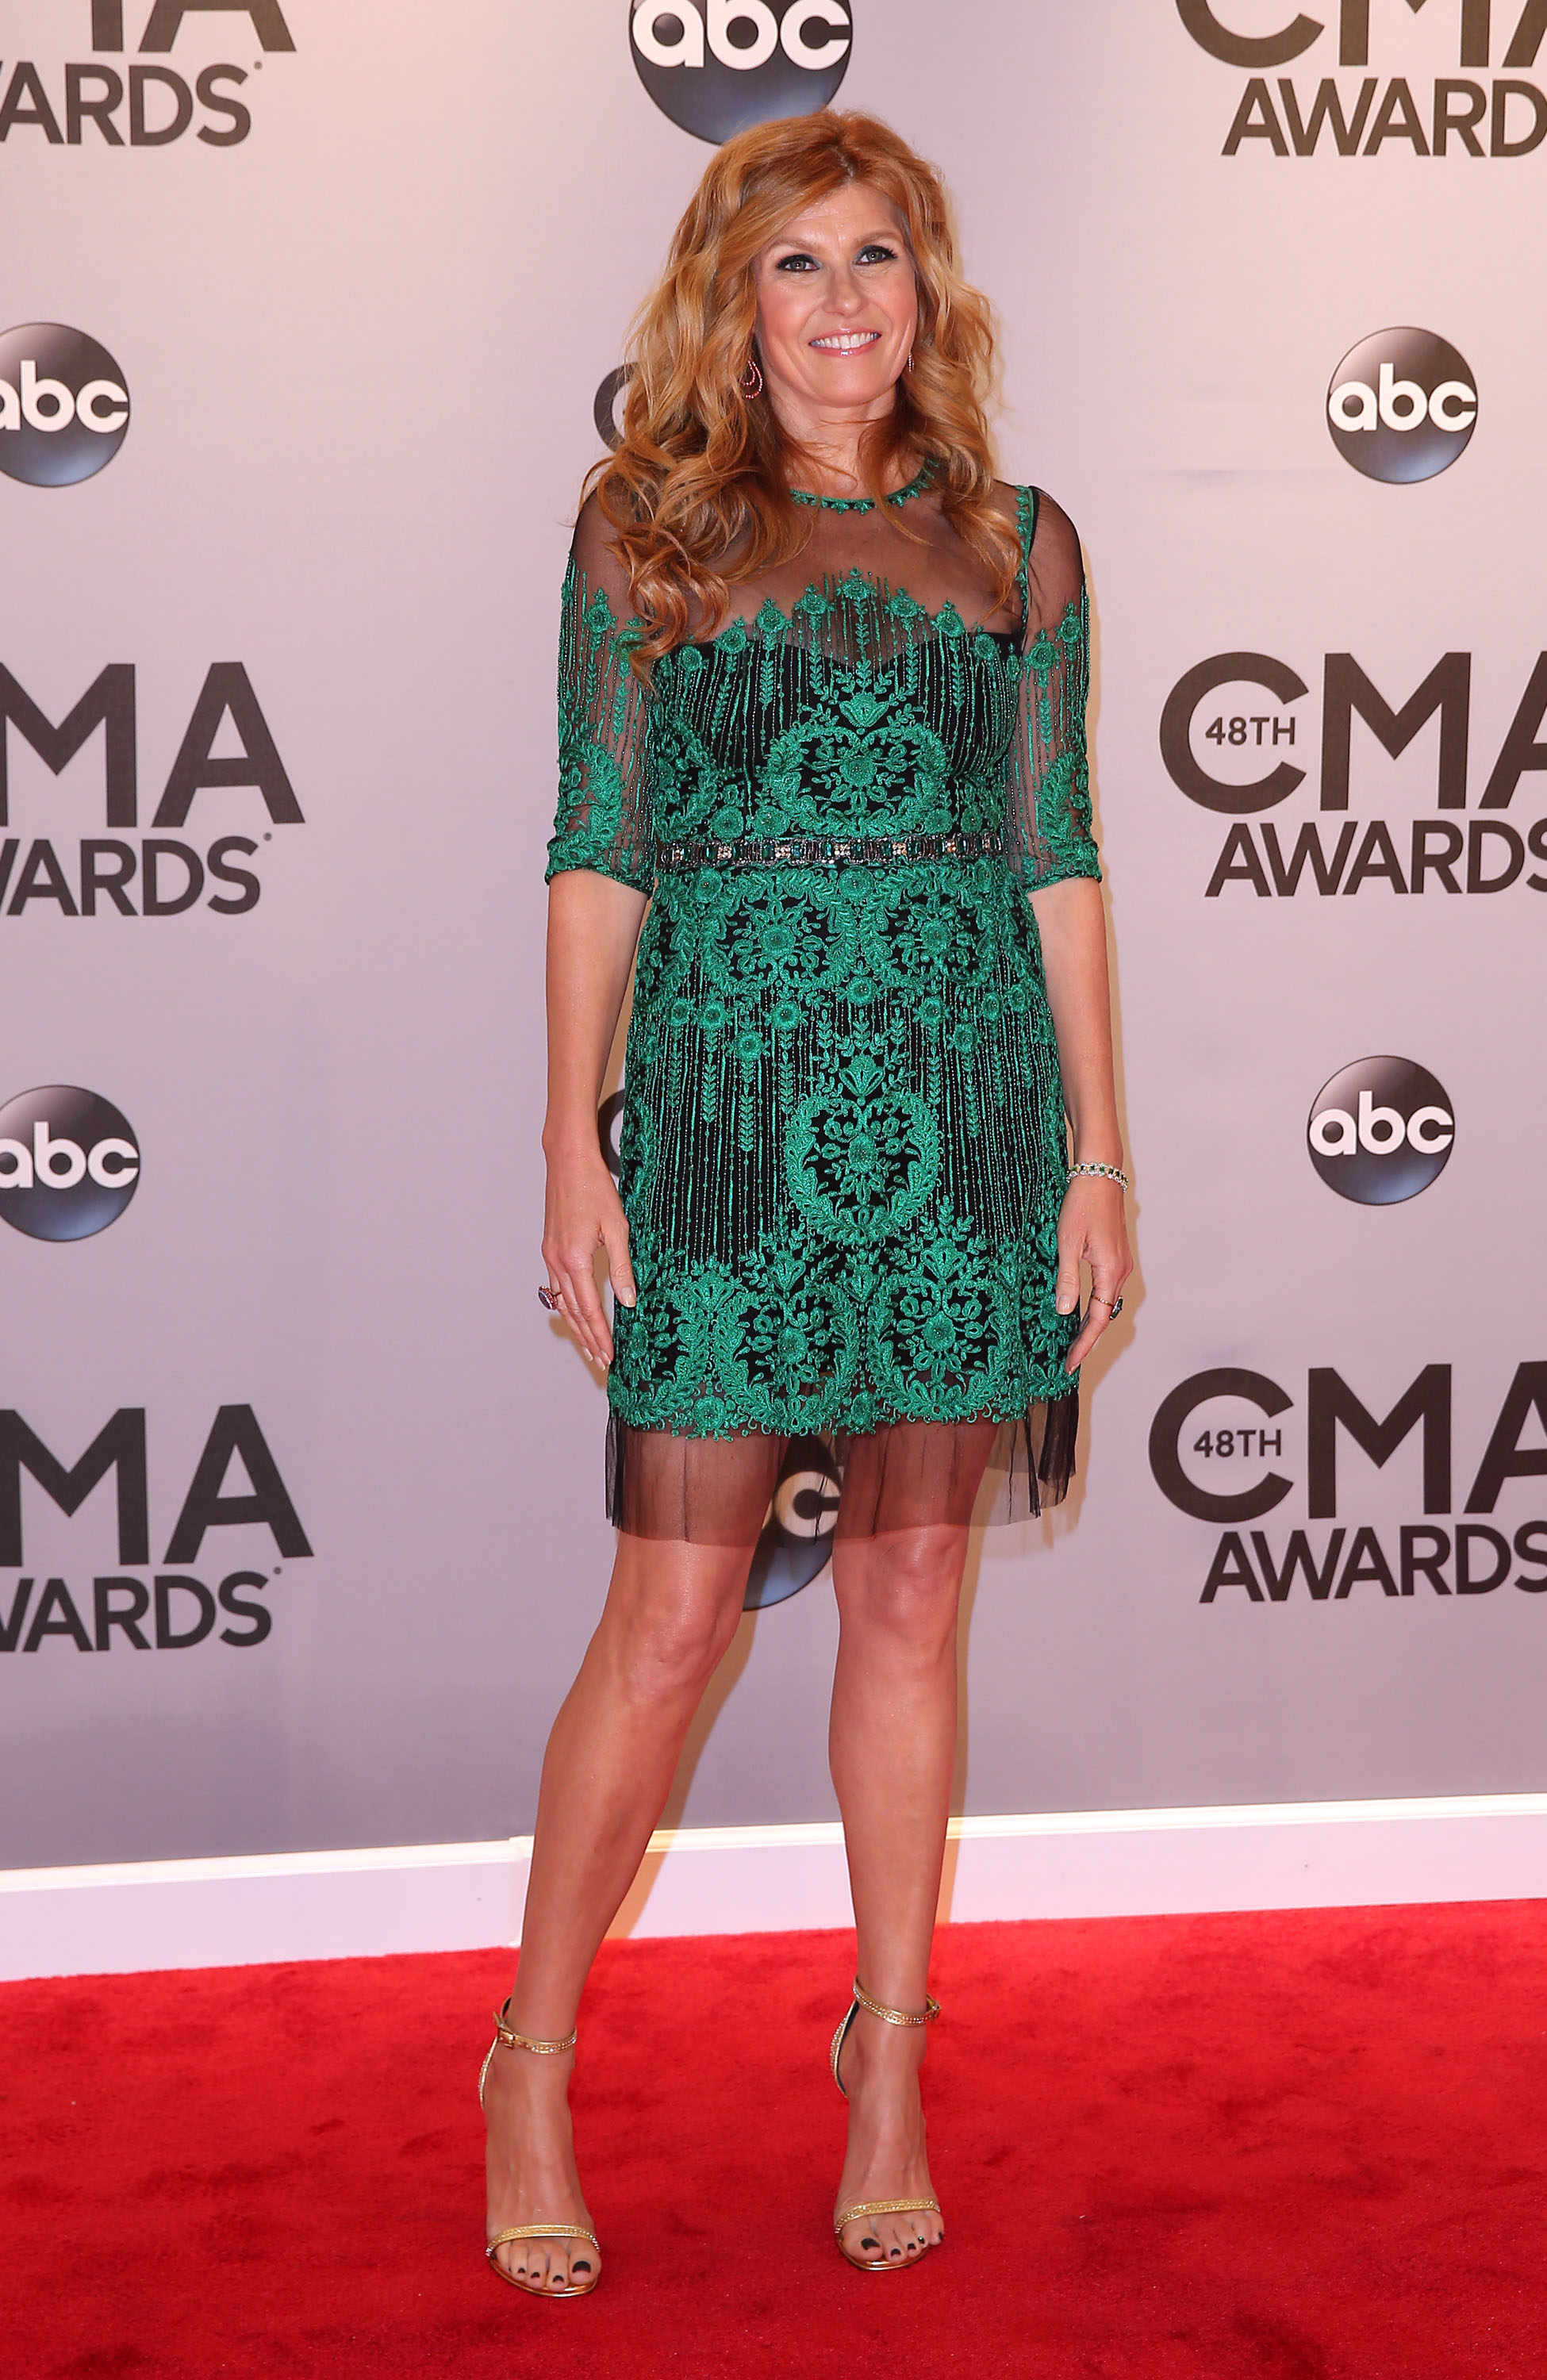 48th Annual CMA Awards 2014 Arrivals at Bridgestone Arena in Nashville, TN  Featuring: Connie Britton Where: Nashville, Tennessee, United States When: 06 Nov 2014 Credit: Judy Eddy/WENN.com